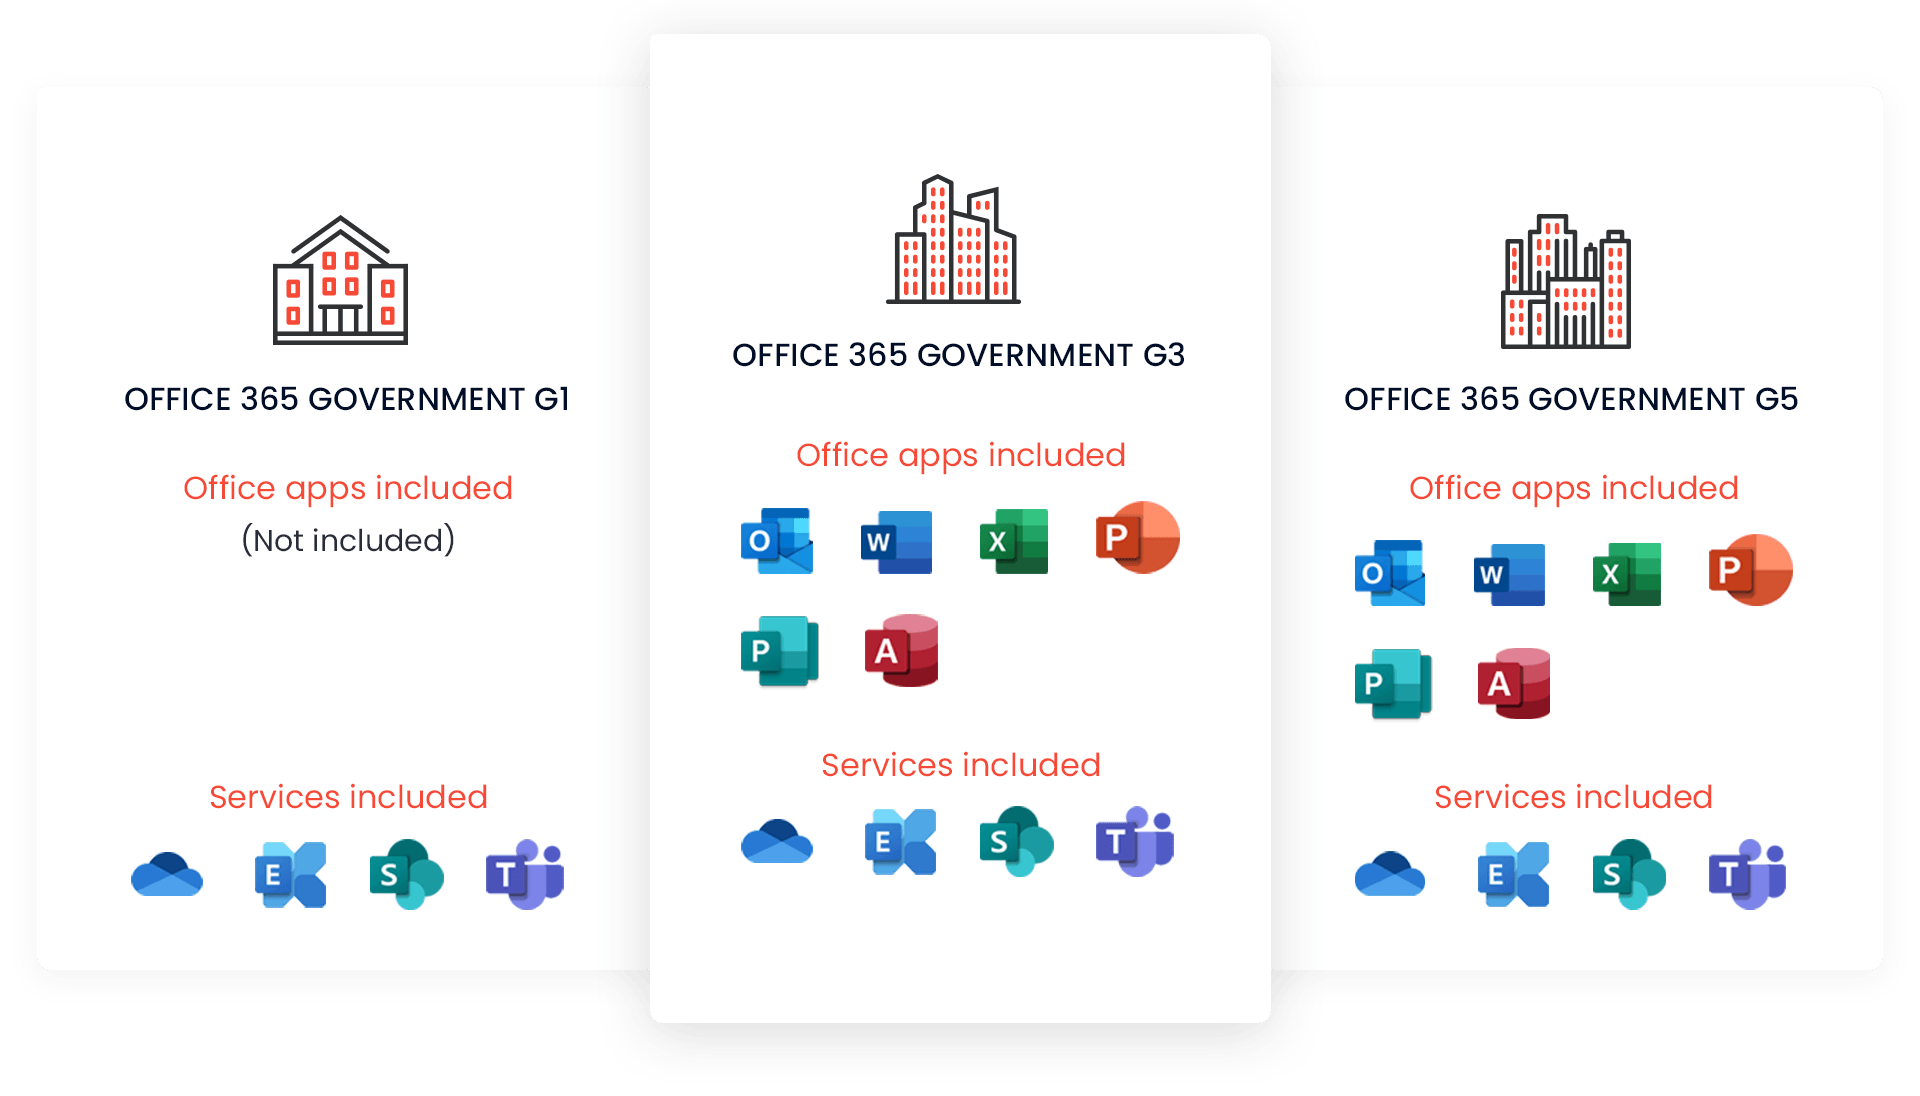 Office 365 for Government